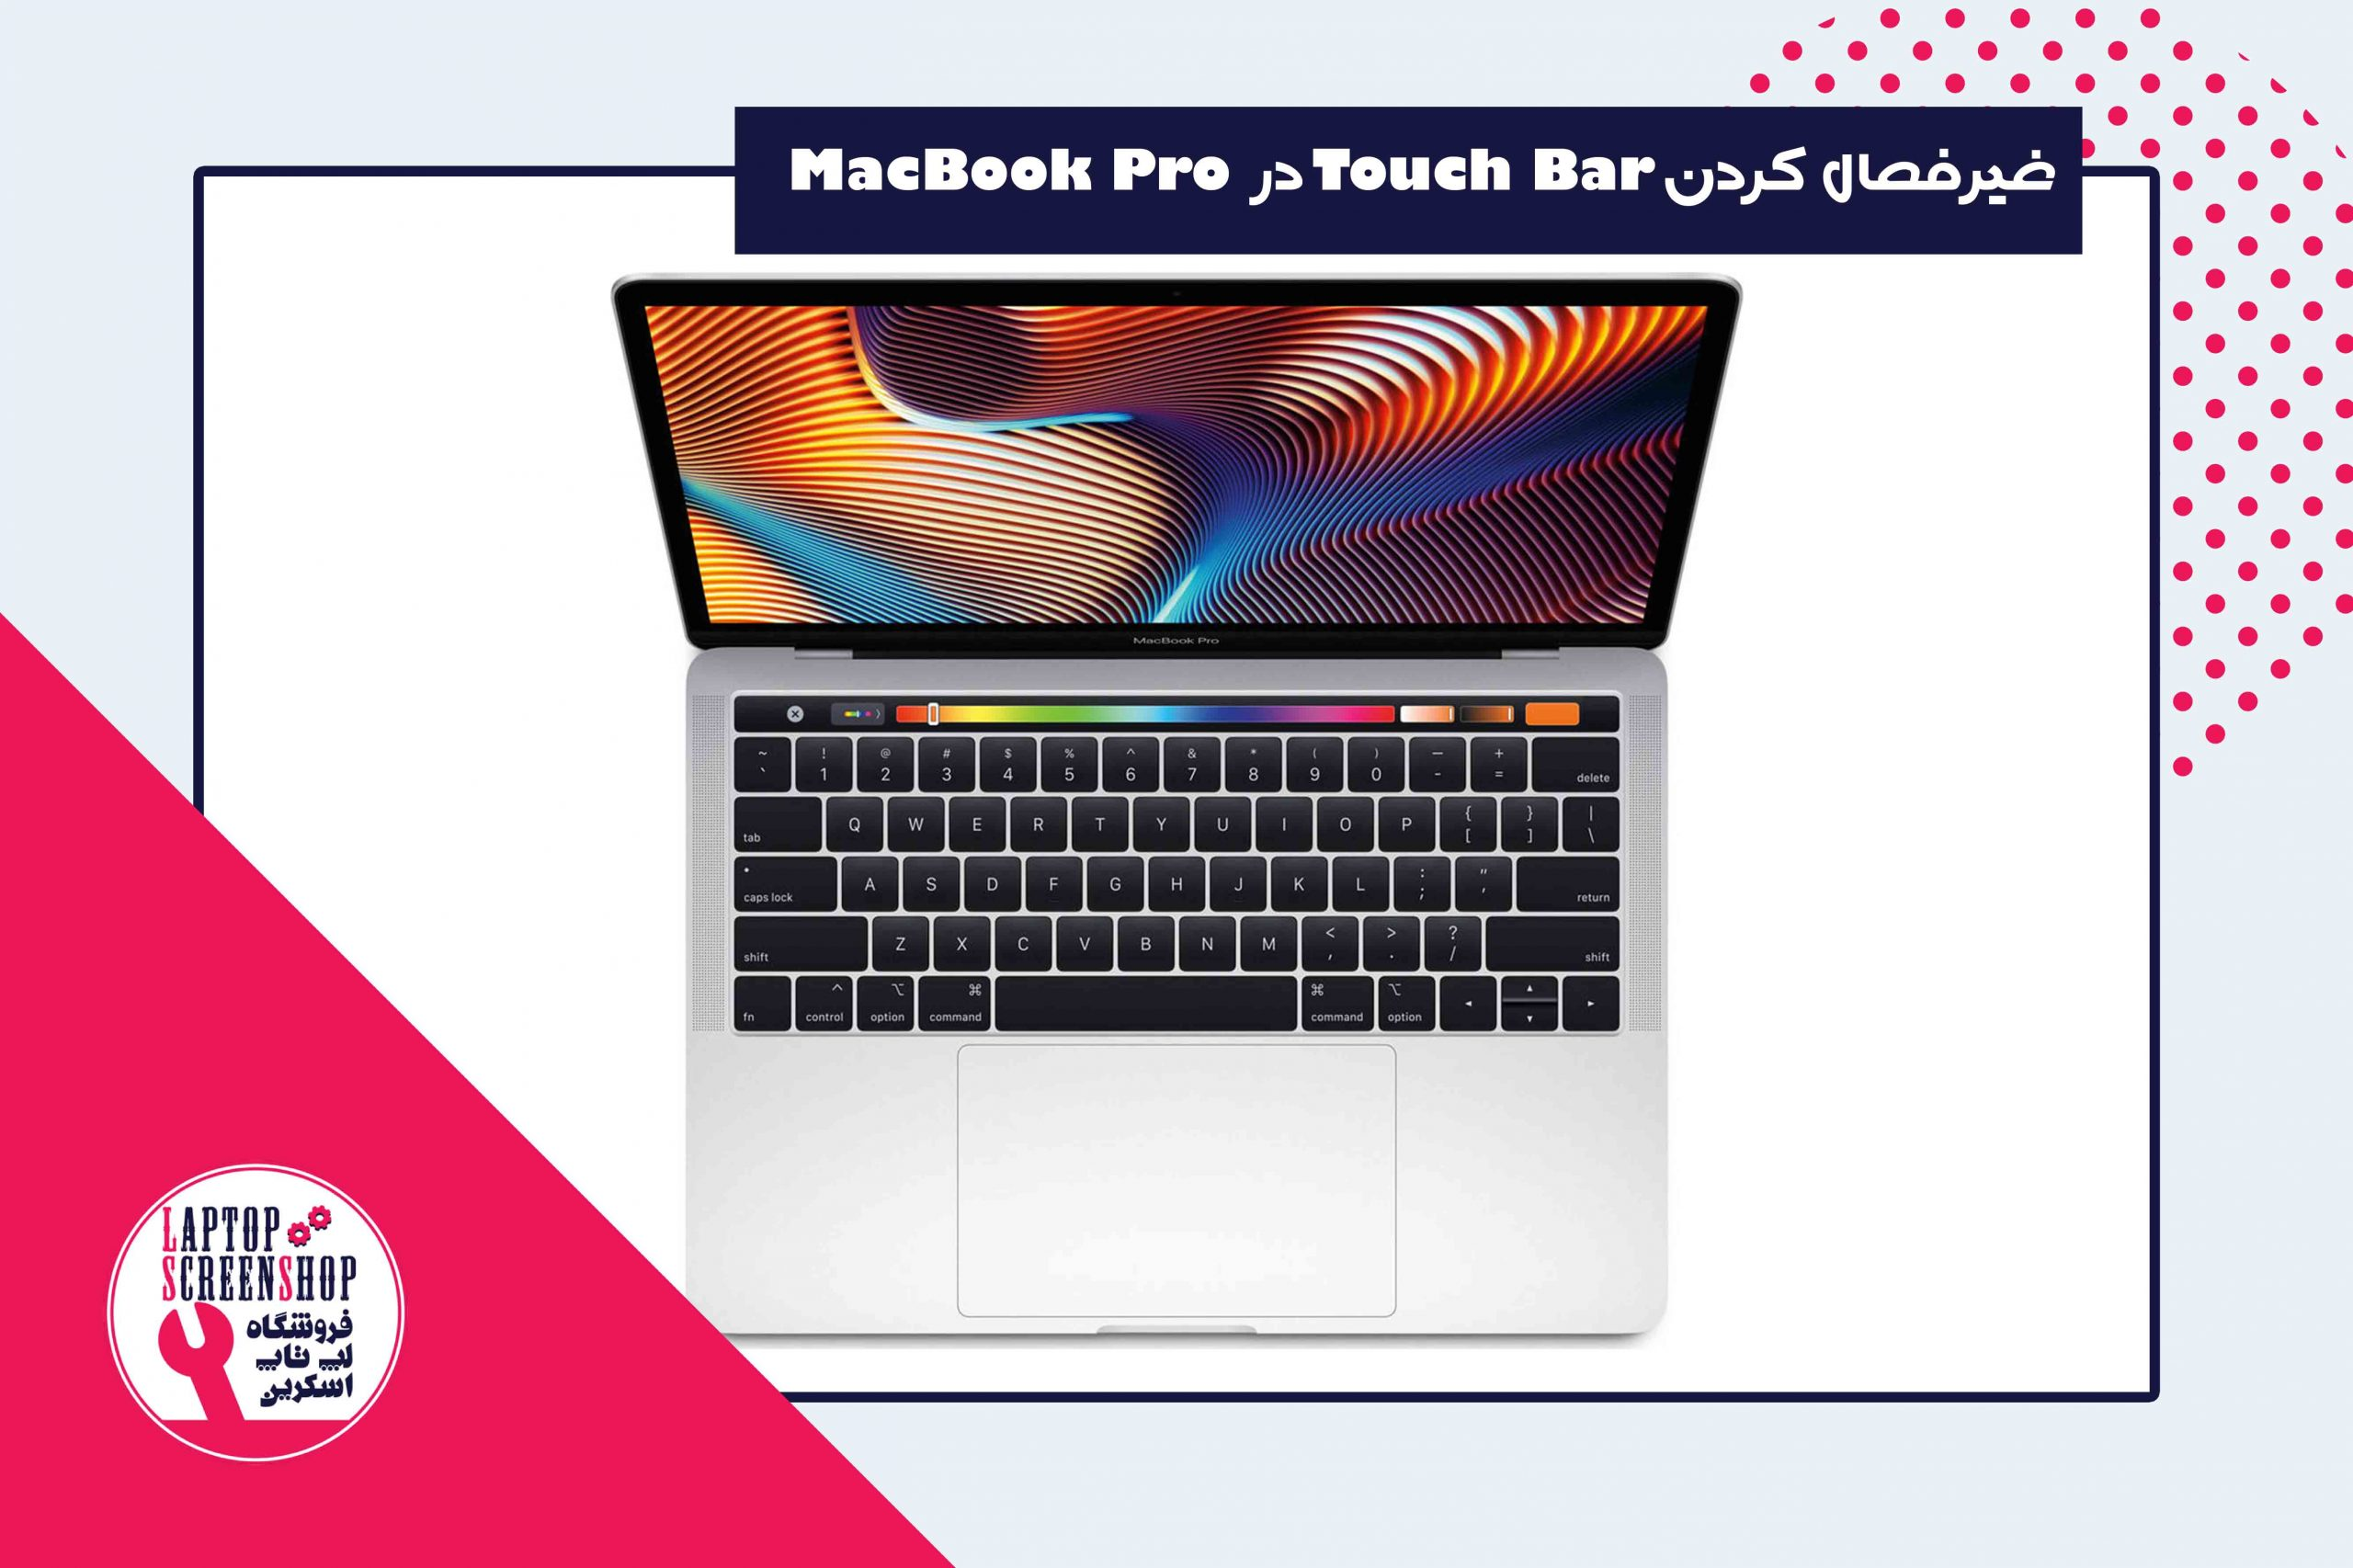 How to disable the Touch Bar on MacBook Pro| لپ تاپ اسکرین| ال سی دی| خرید اینترنتی ال سی دی لپ تاپ